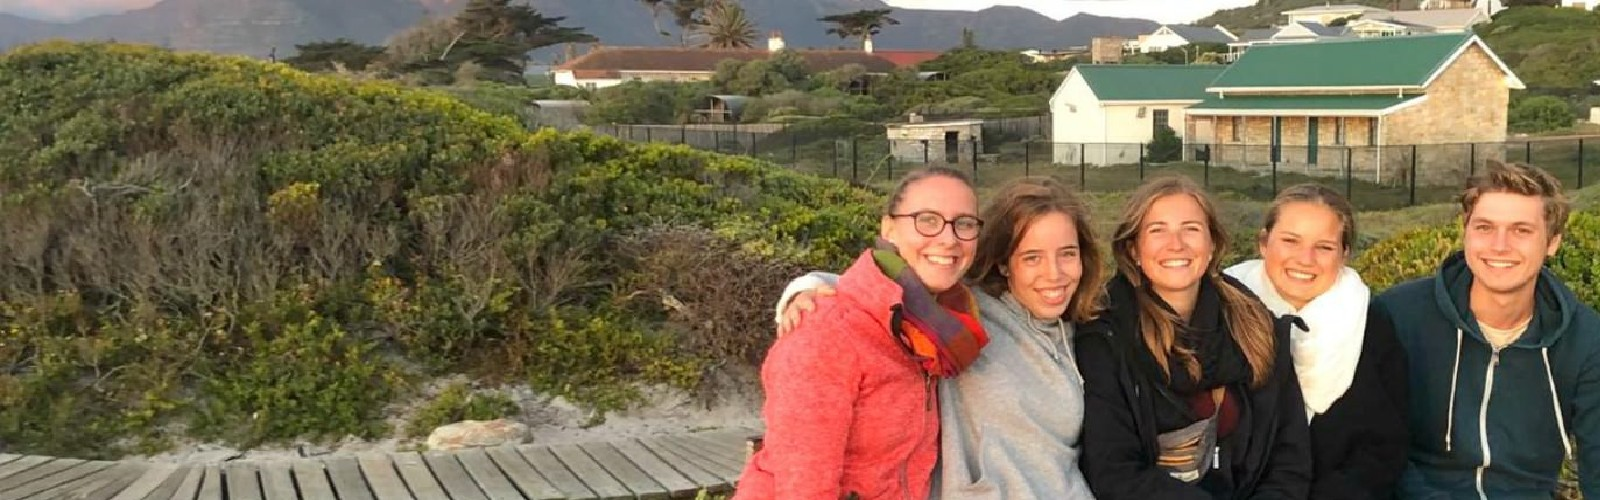 My Experience in South Africa Changed My Life